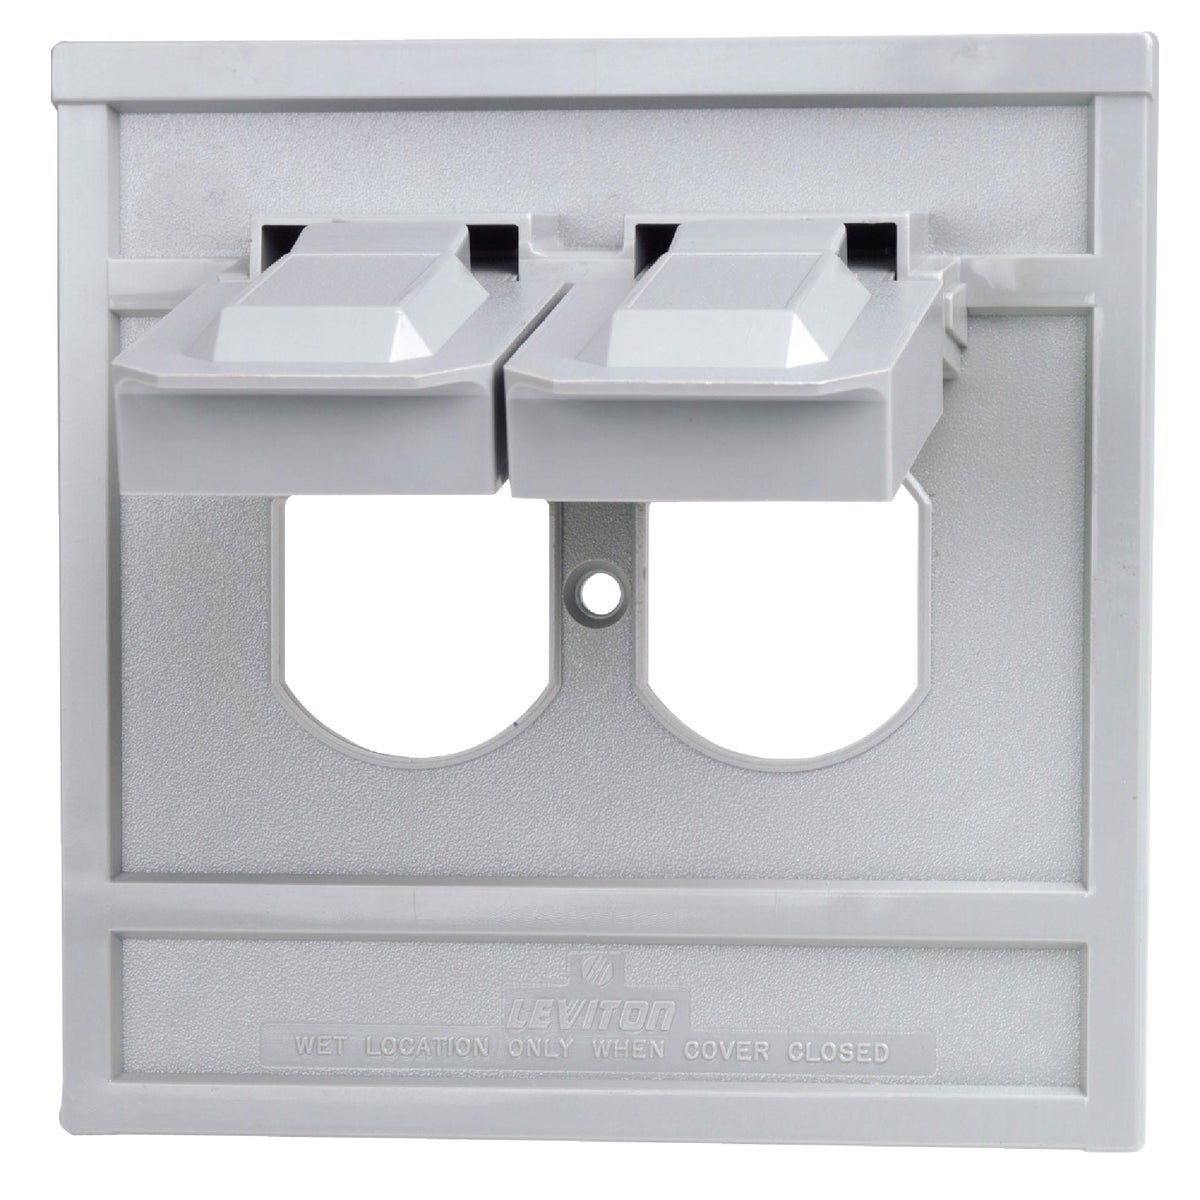 GRAY OUTDOR OUTLET COVER - 0004986GY by Leviton Mfg Co